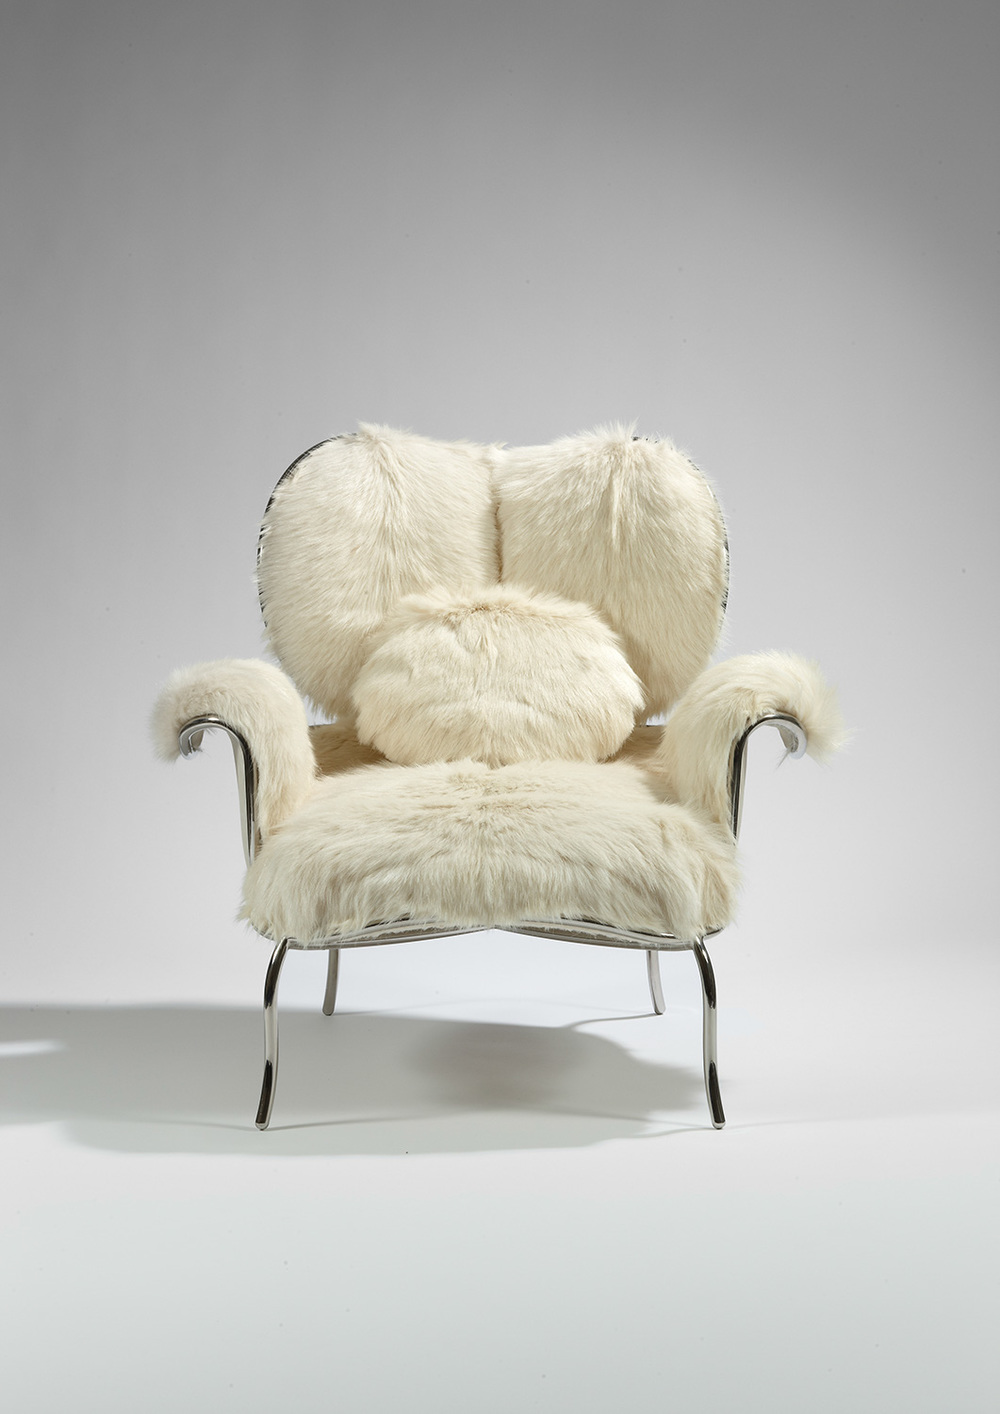 MB Armchair 'Big Jim' (White) - 2.jpg